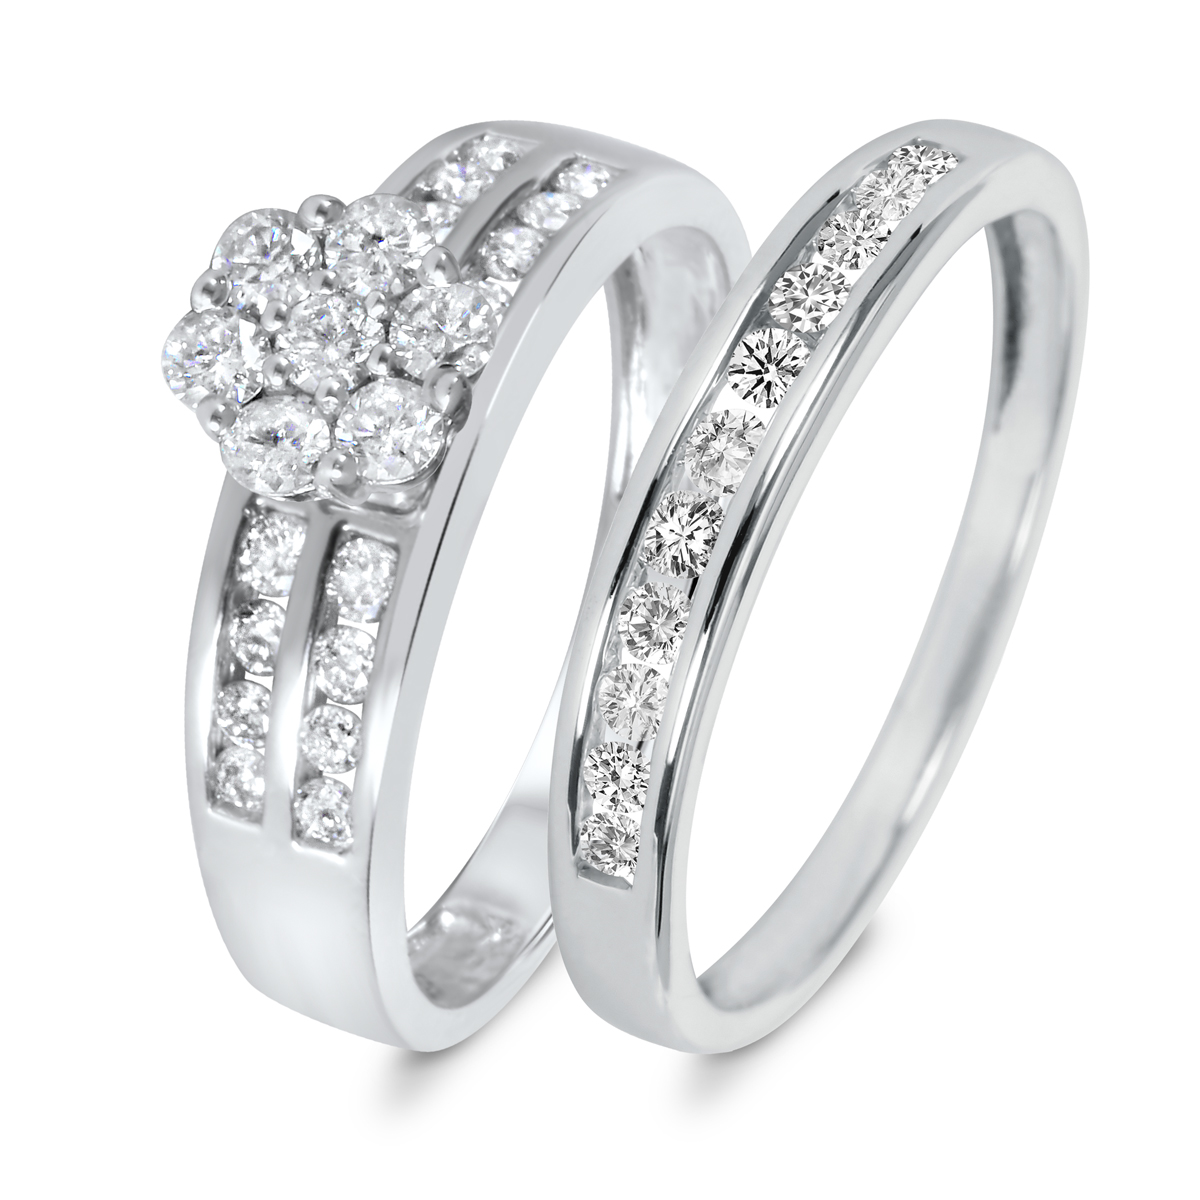 78 CT TW Diamond Womens Bridal Wedding Ring Set 14K White Gold